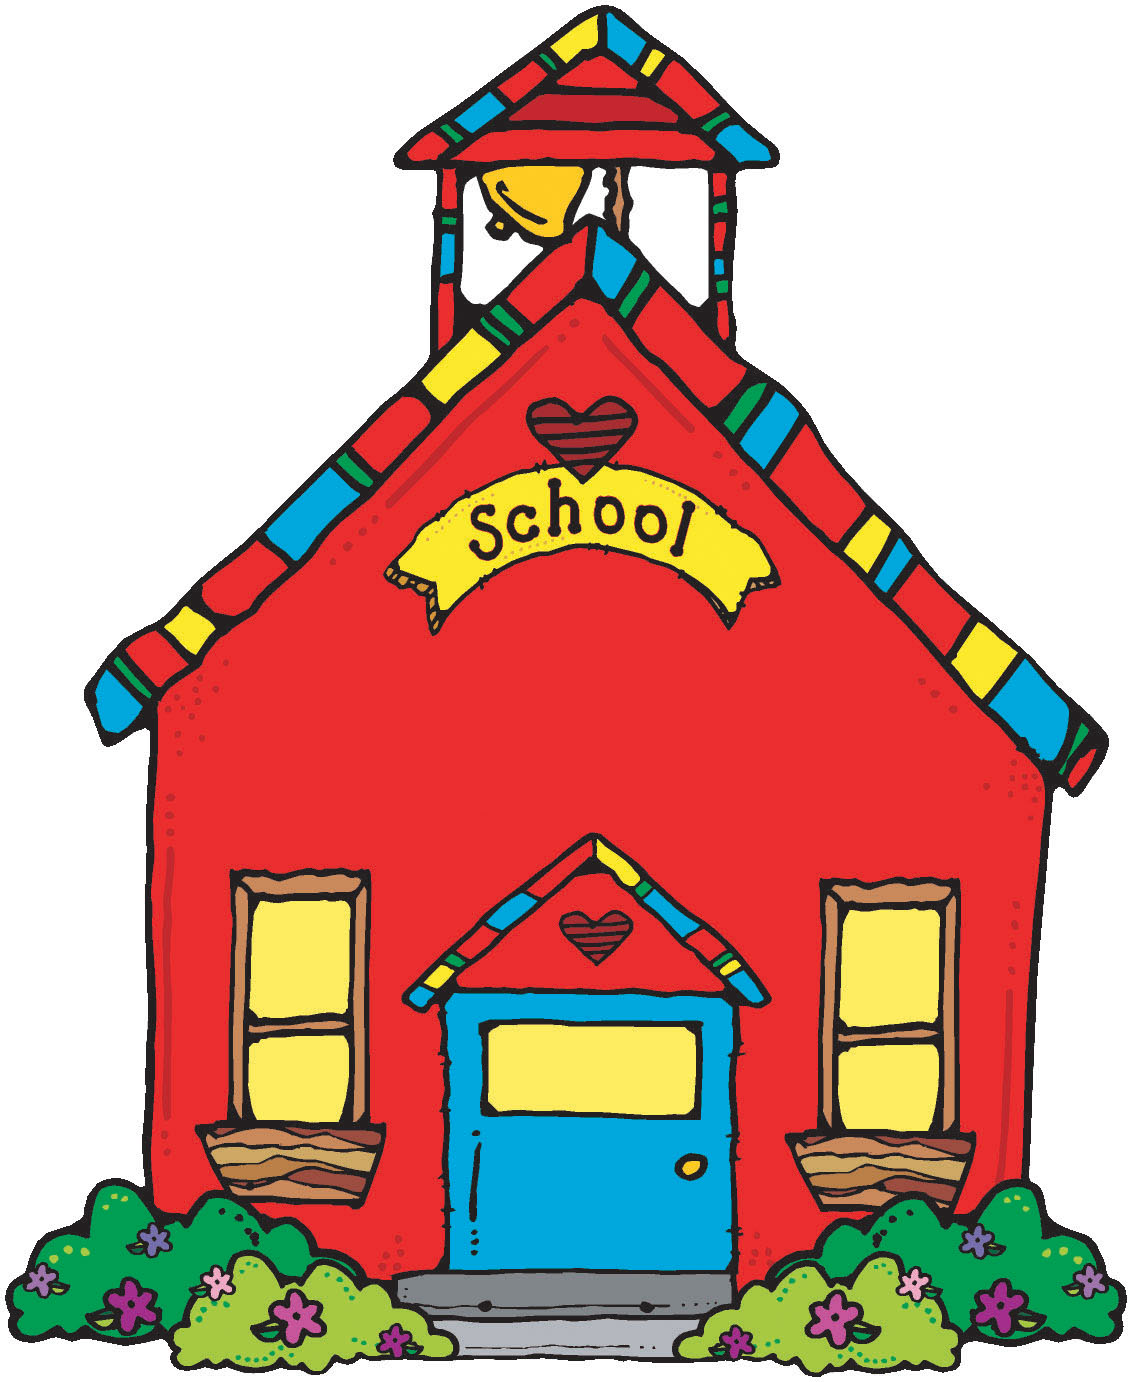 School House Red Schoolhouse Clipart